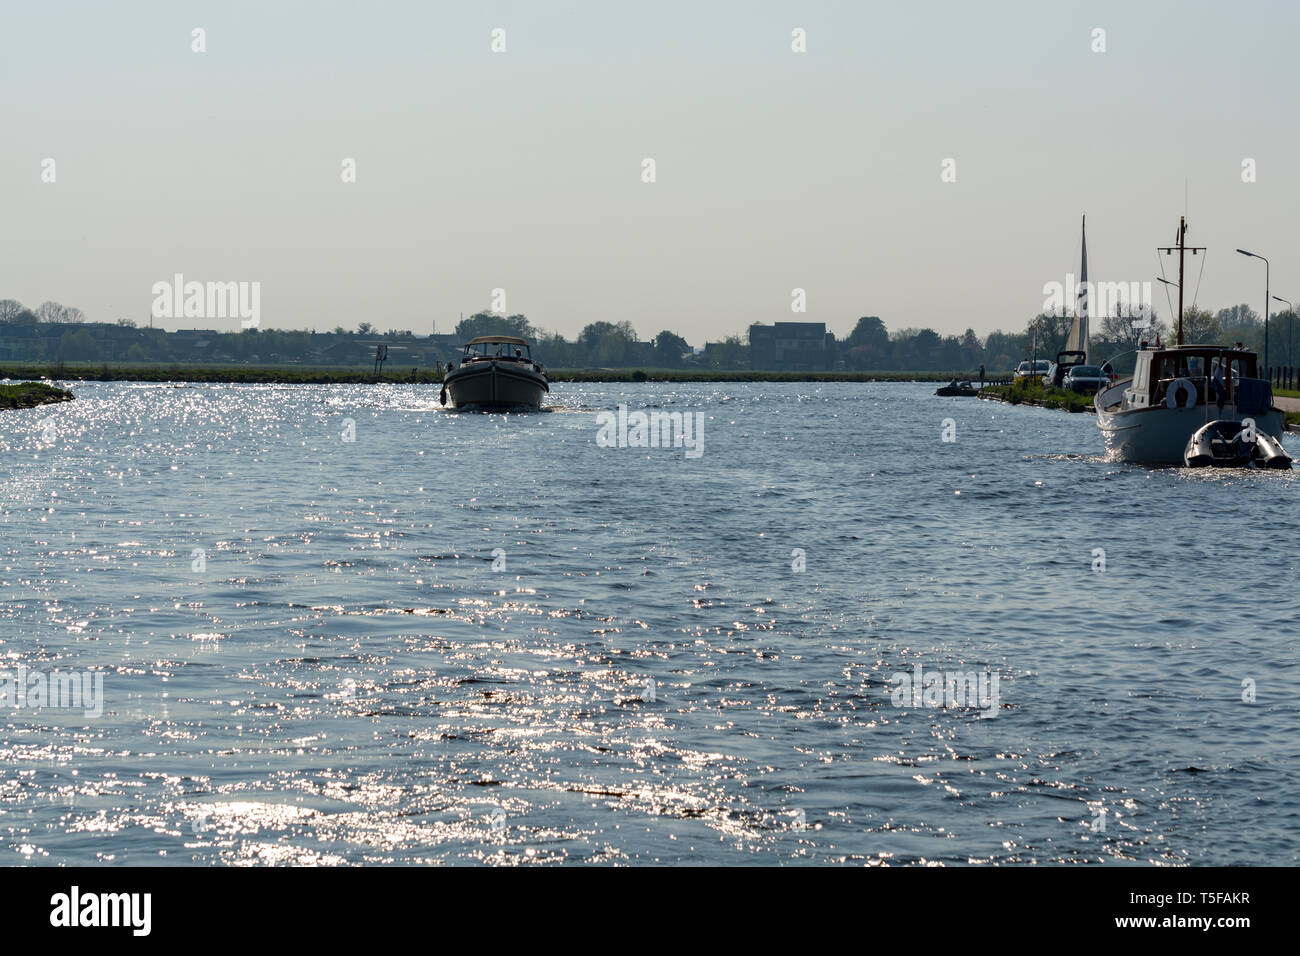 Landscape with waterways and canals of North Holland with boats, canal-side lifestyle in The Netherlands Stock Photo